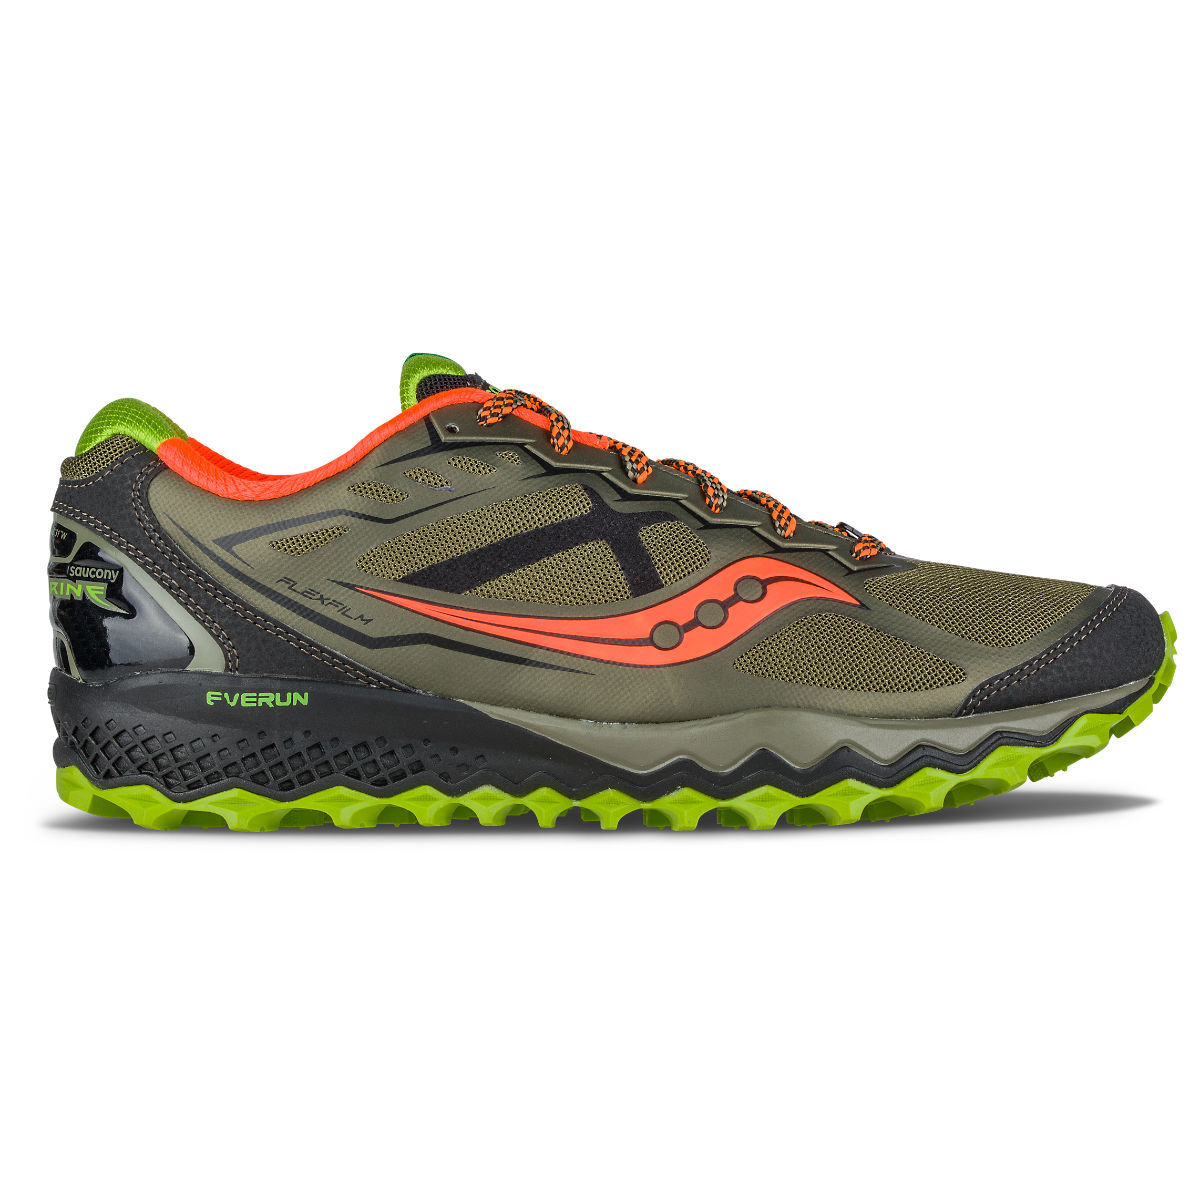 Chaussures Saucony Peregrine 6 (AH16) - 10 UK Olive/Green/Orange Chaussures de running trail